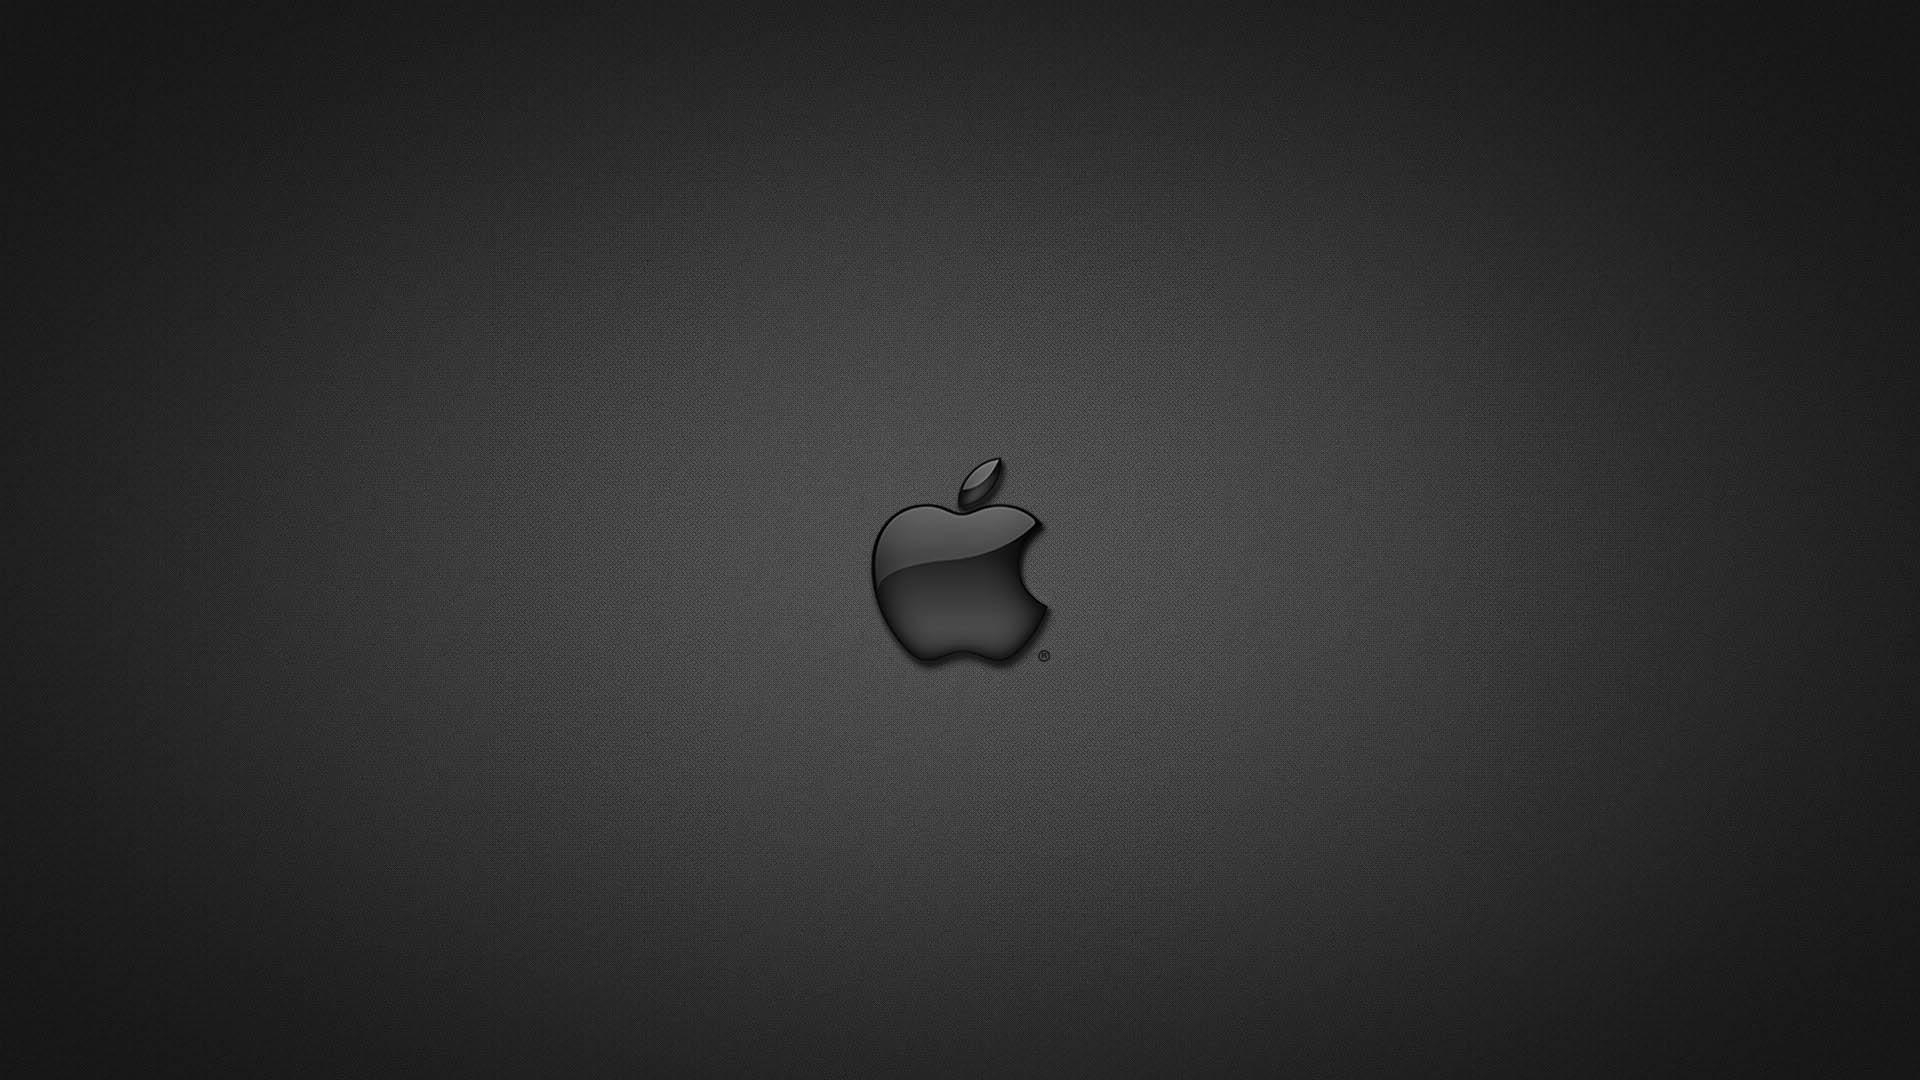 black apple wallpaper hd collection (51+)